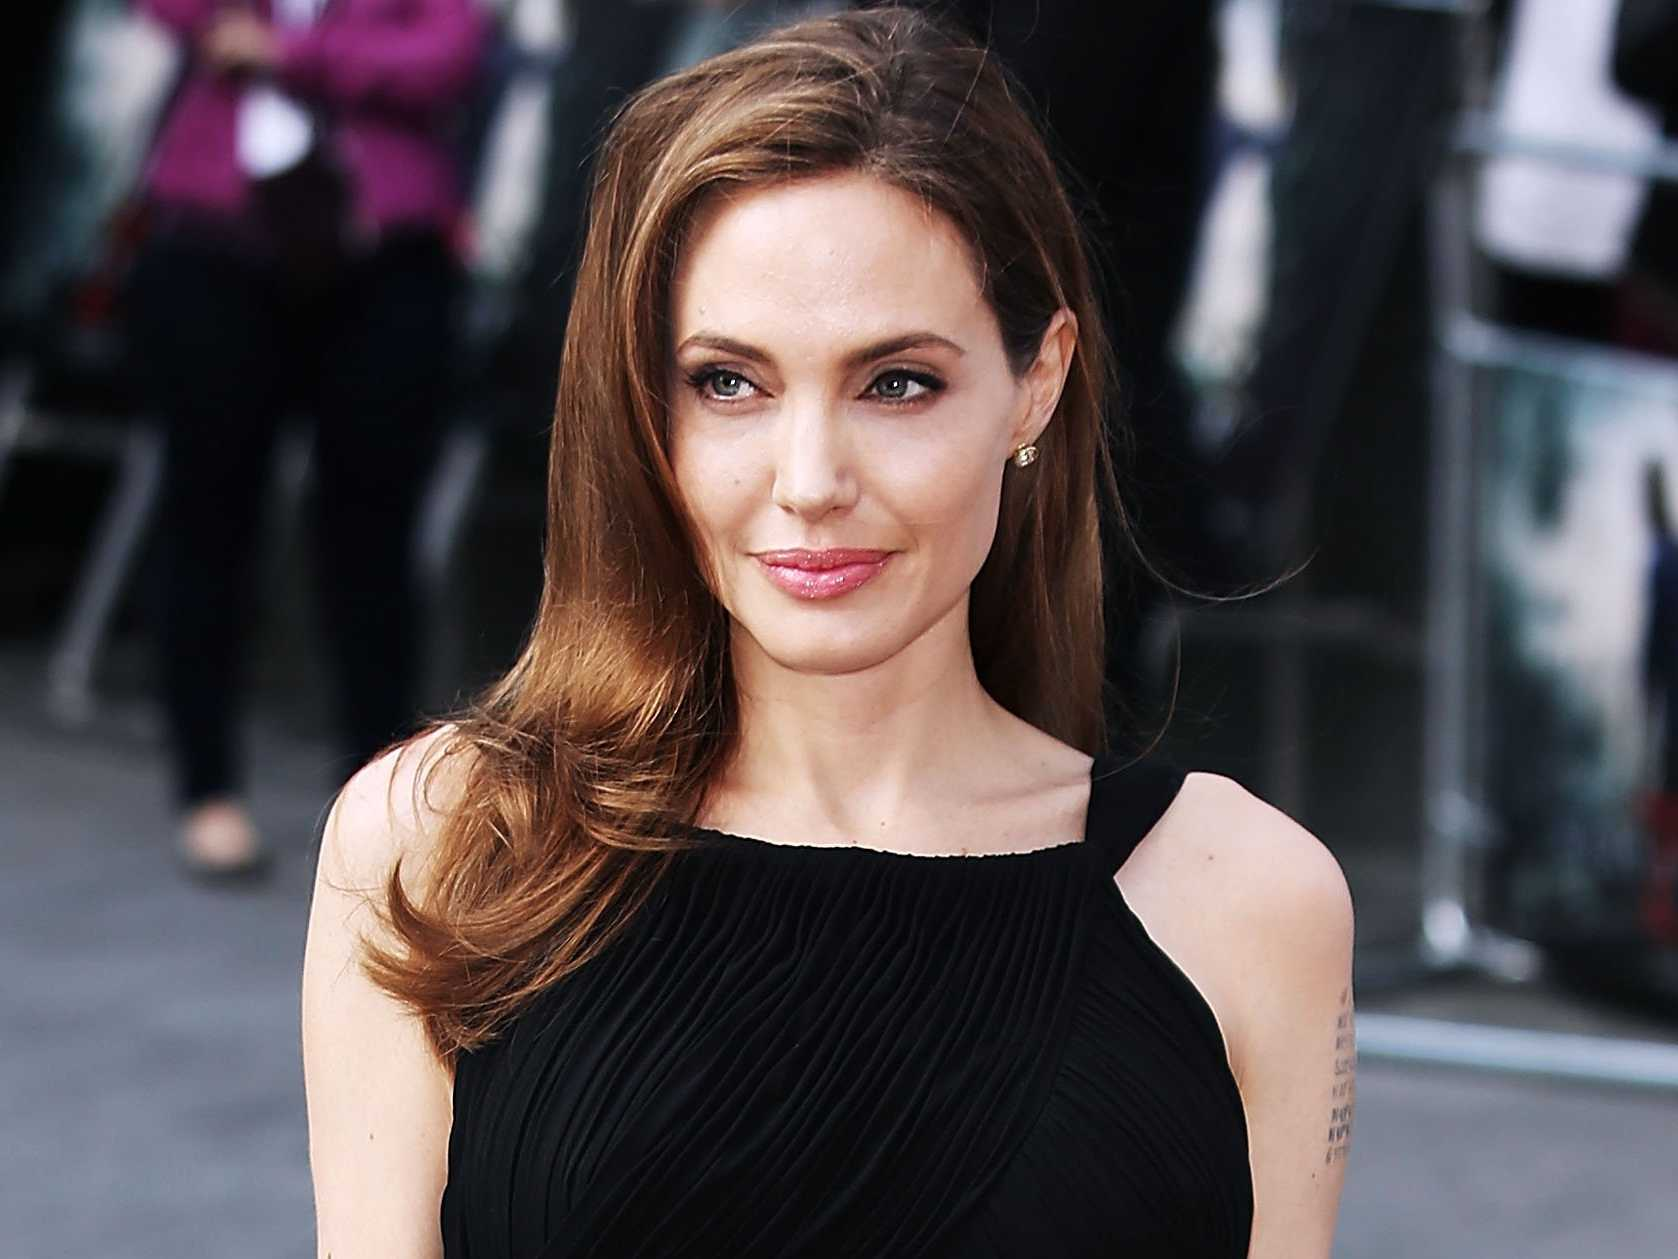 Angelina Jolie: 15 Quotes By Angelina Jolie That Define The Badass Alpha